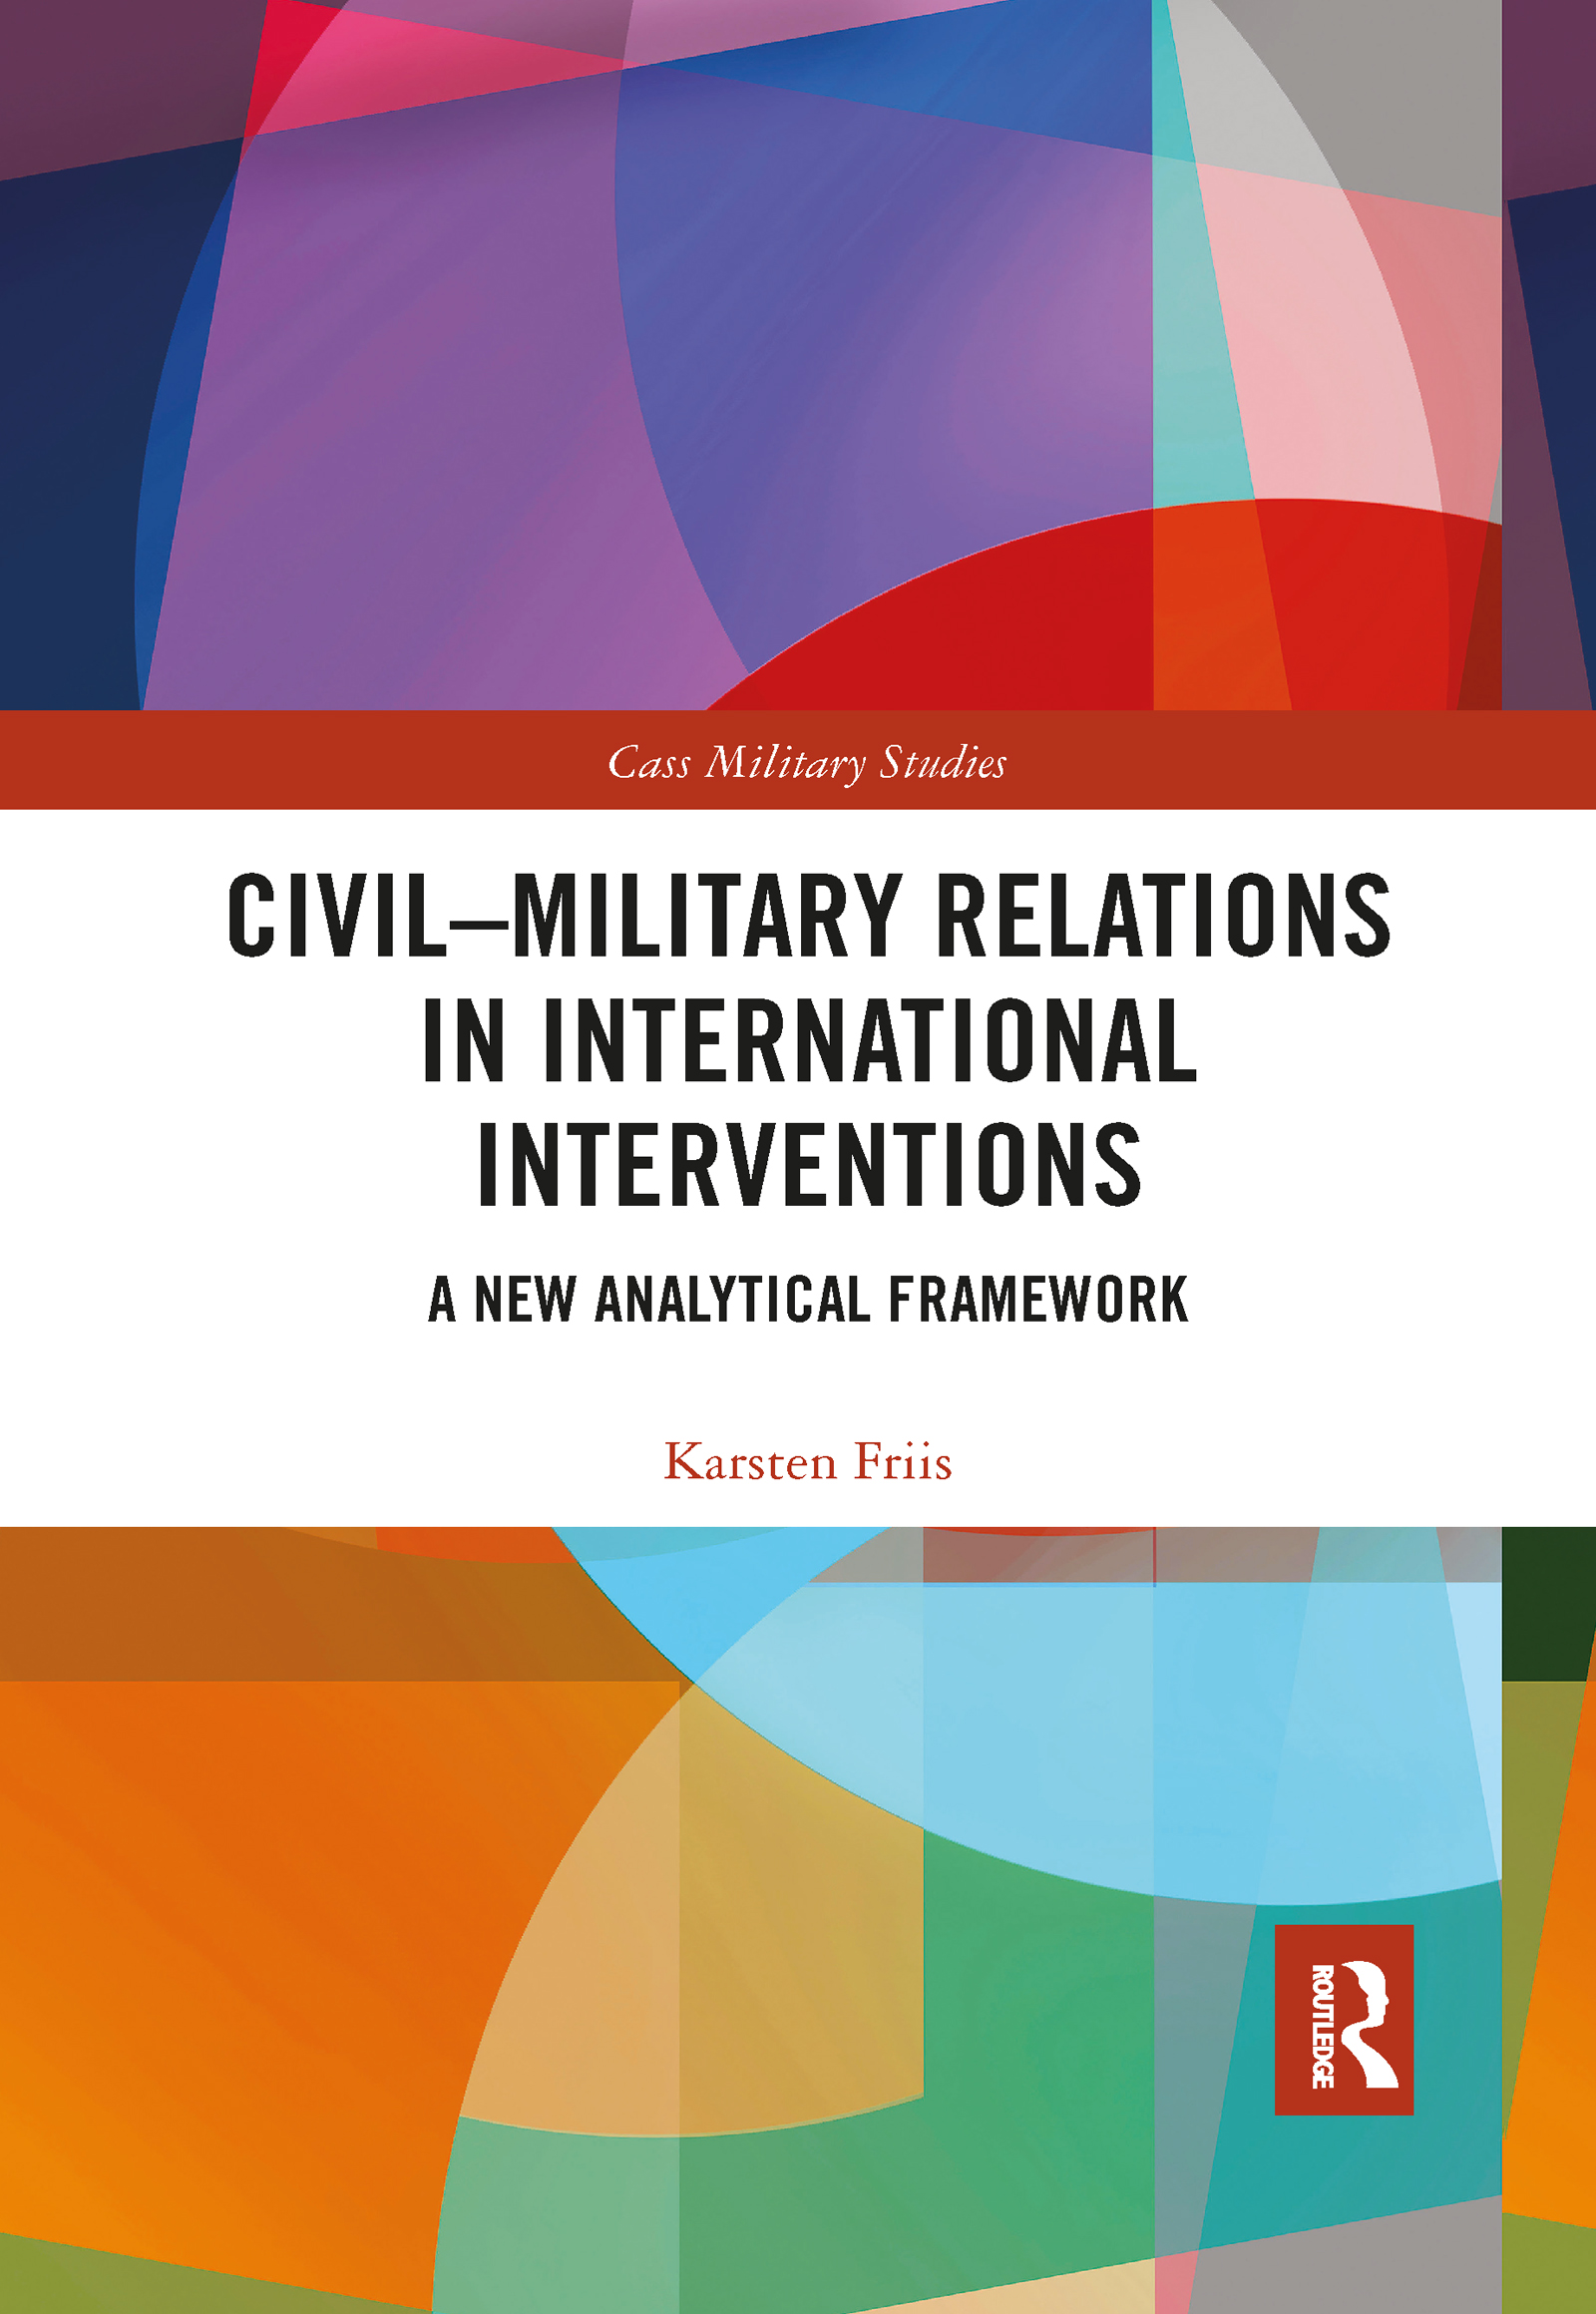 Civil-Military Relations in International Interventions